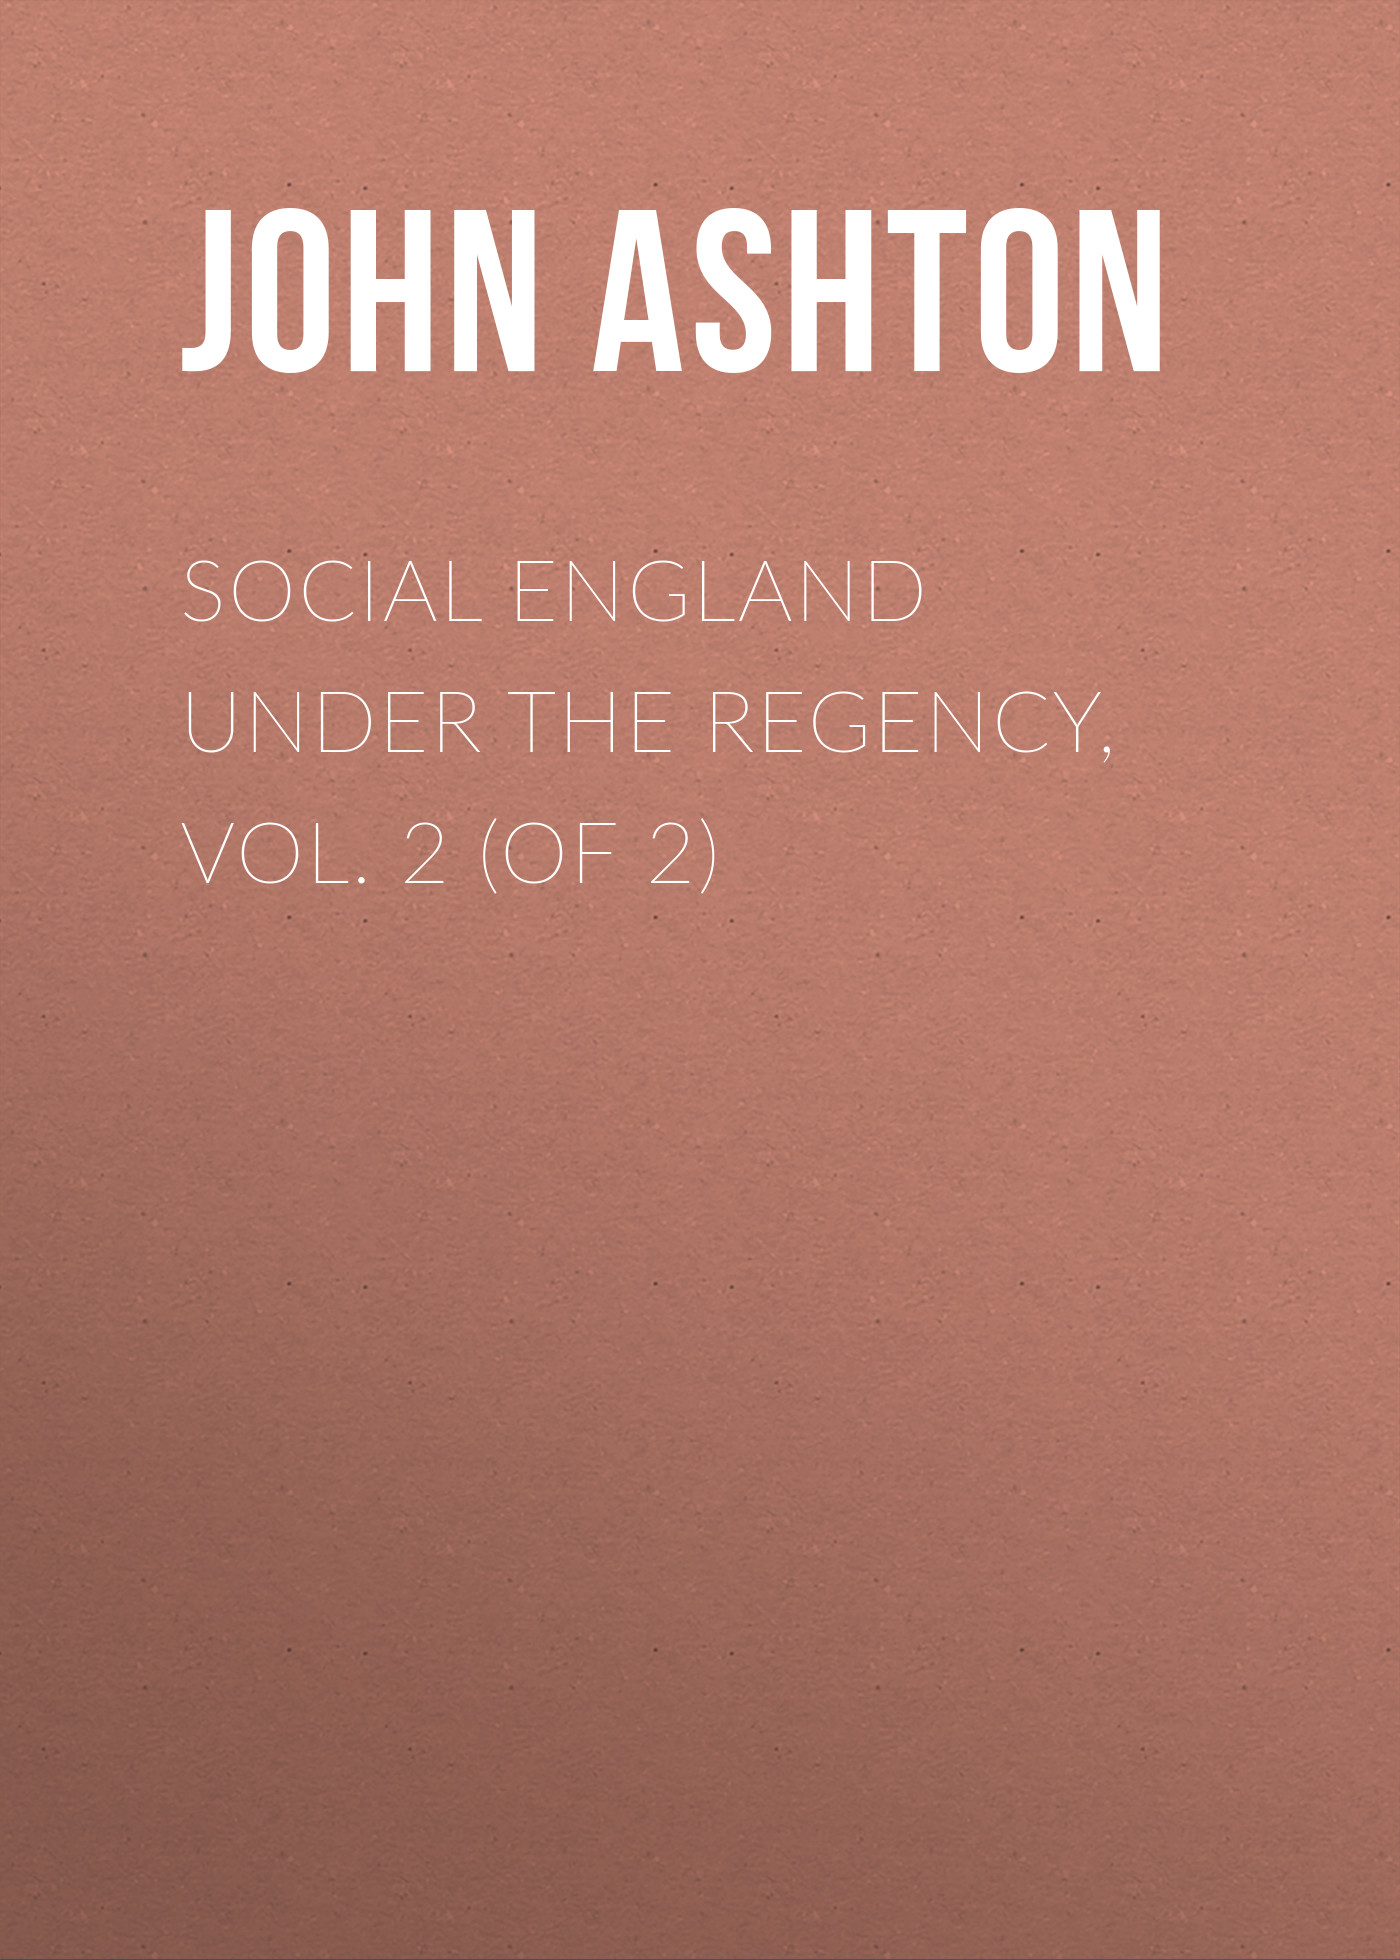 лучшая цена Ashton John Social England under the Regency, Vol. 2 (of 2)